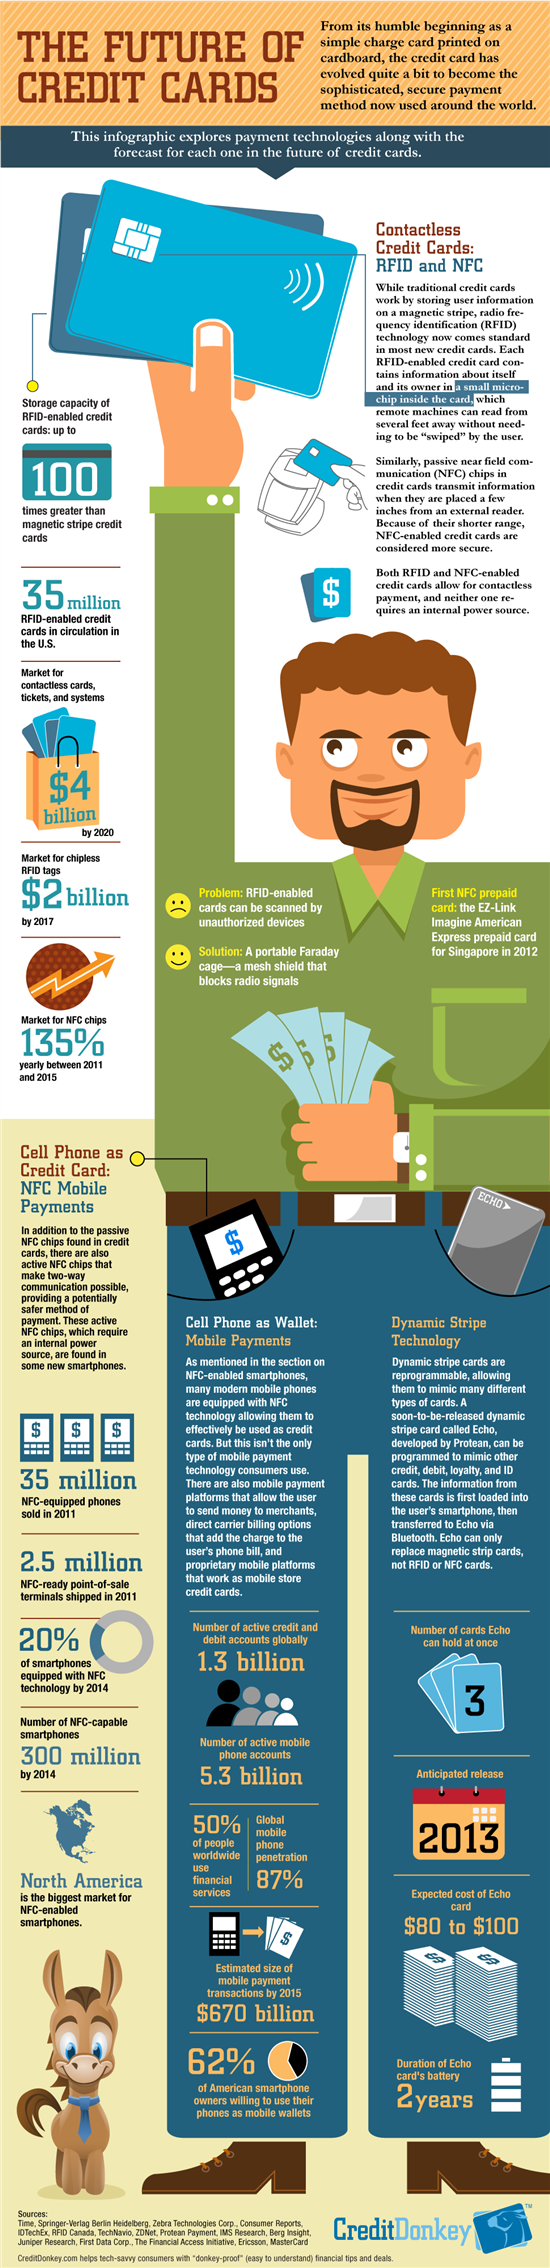 Infographic: Future of Credit Cards